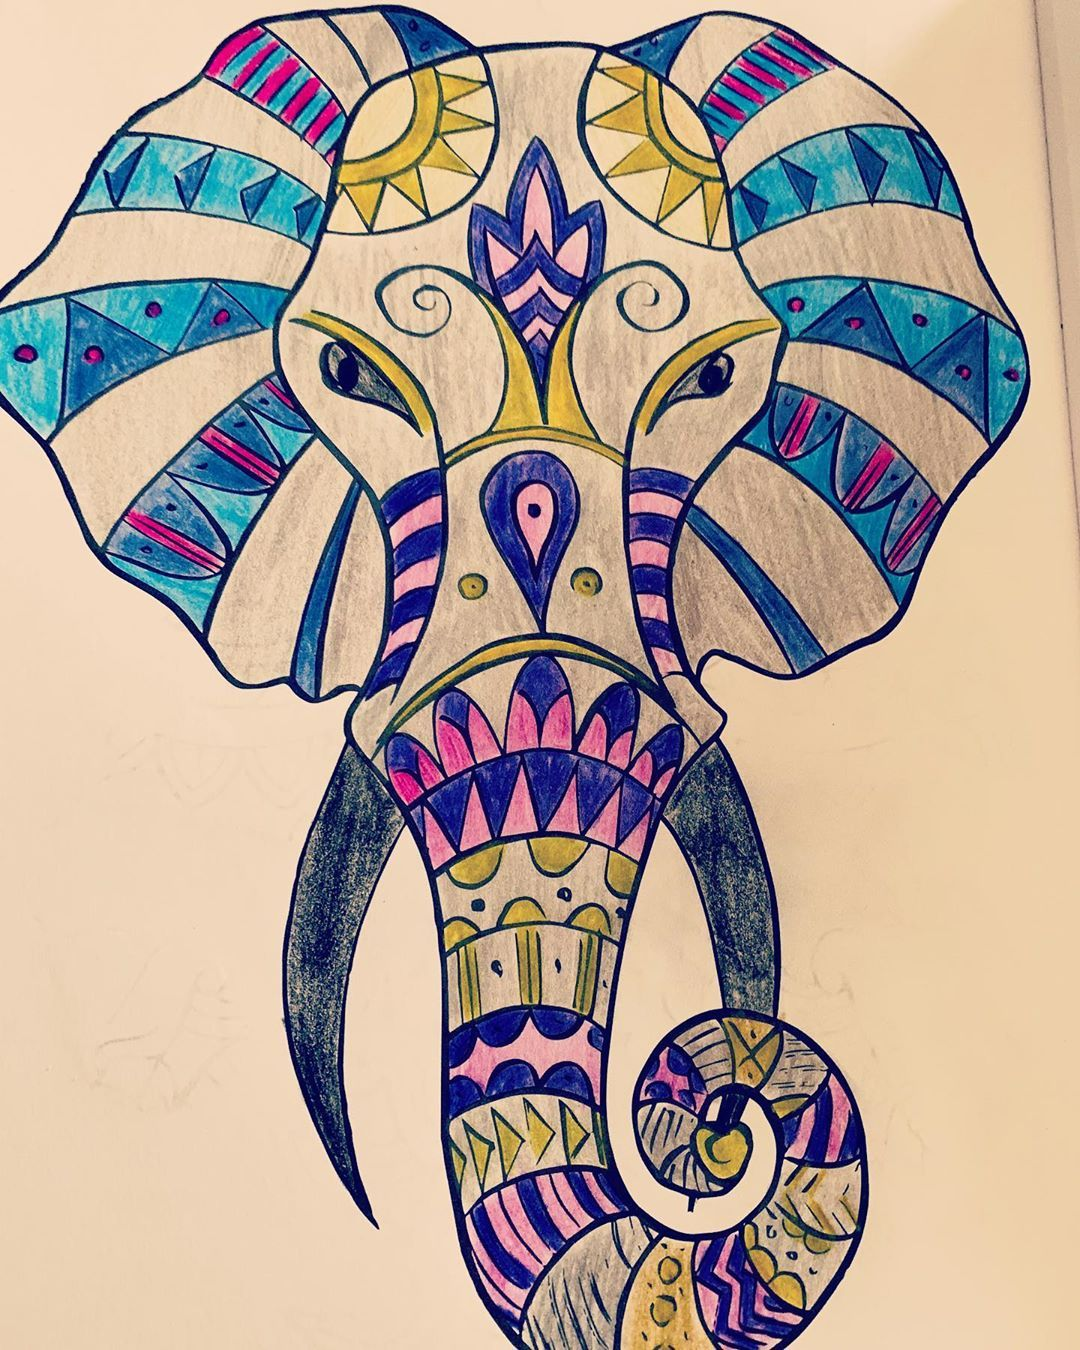 #colouring #colouringforadults #colouringbook #tattooideas #tattooart #colouringbookforadults #colours #artofinstagram #artwork #elephantdesign #elephanttattoo #elephantart #artsy #pencils #coolcolors #coolcolorscheme #pictureoftheday #stayhome #stayhealthy #stayathome #isolation #isolationcreation